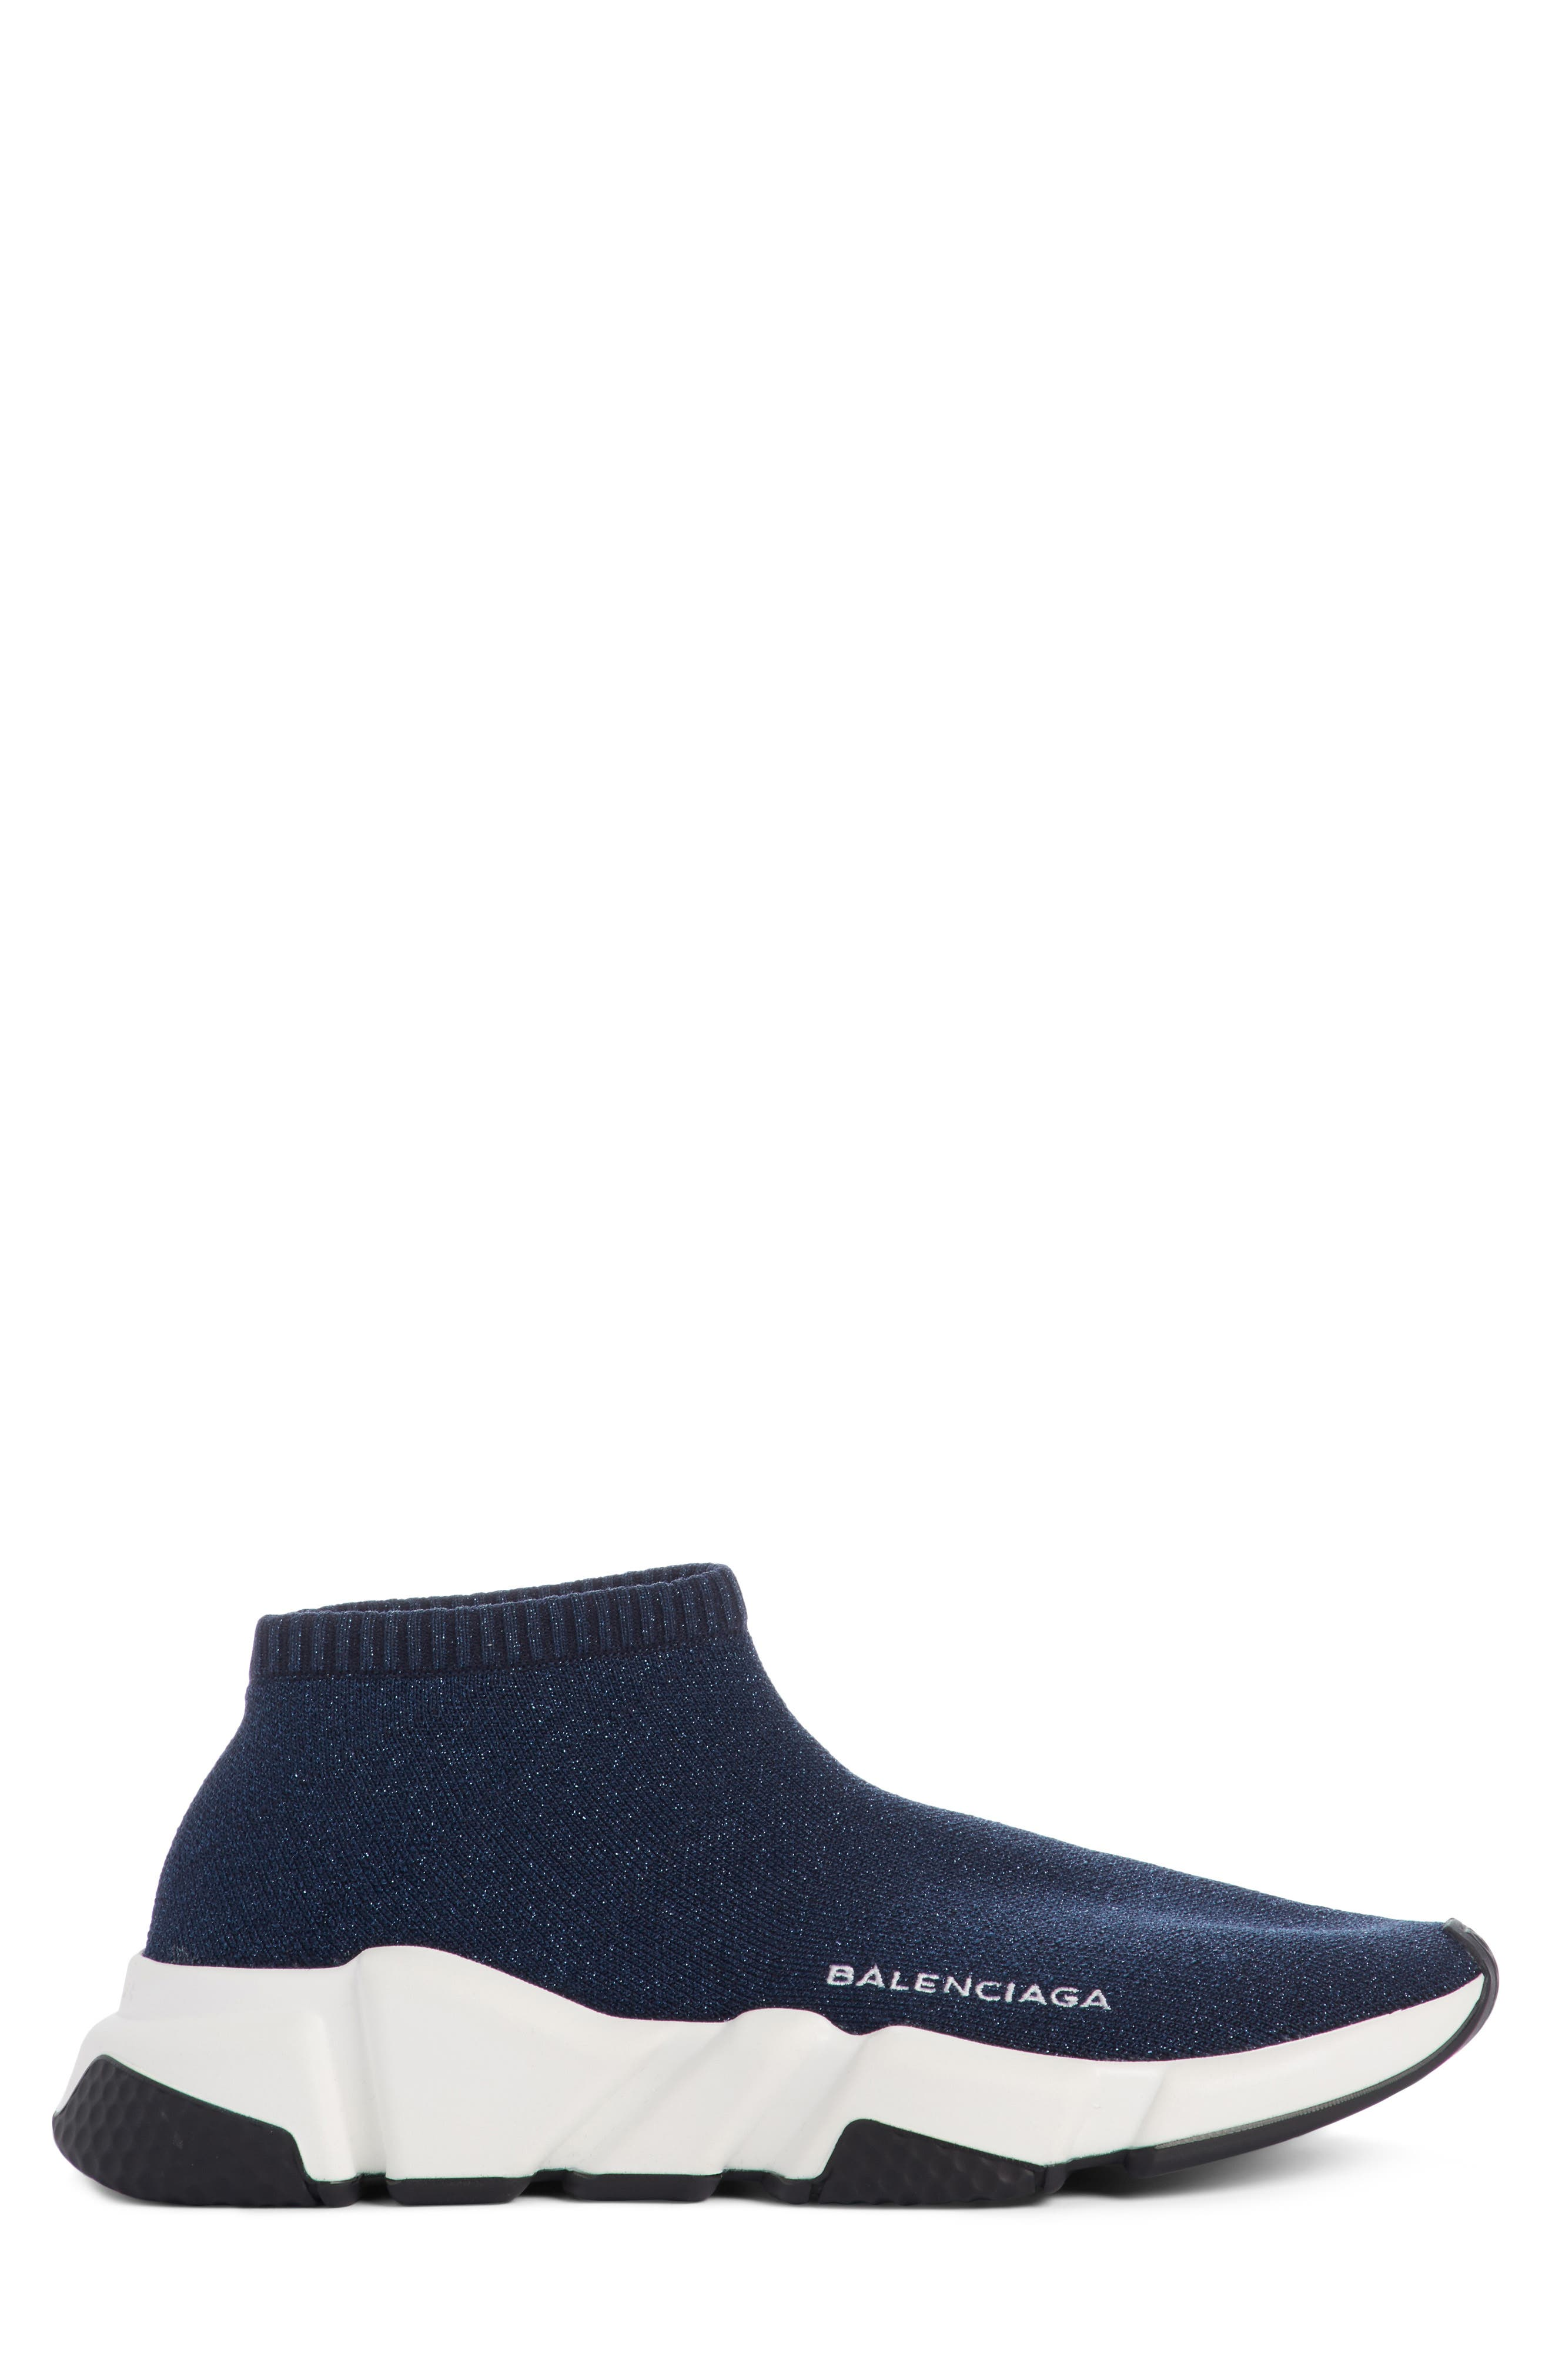 Low Speed Sneaker,                             Alternate thumbnail 3, color,                             Midnight Blue